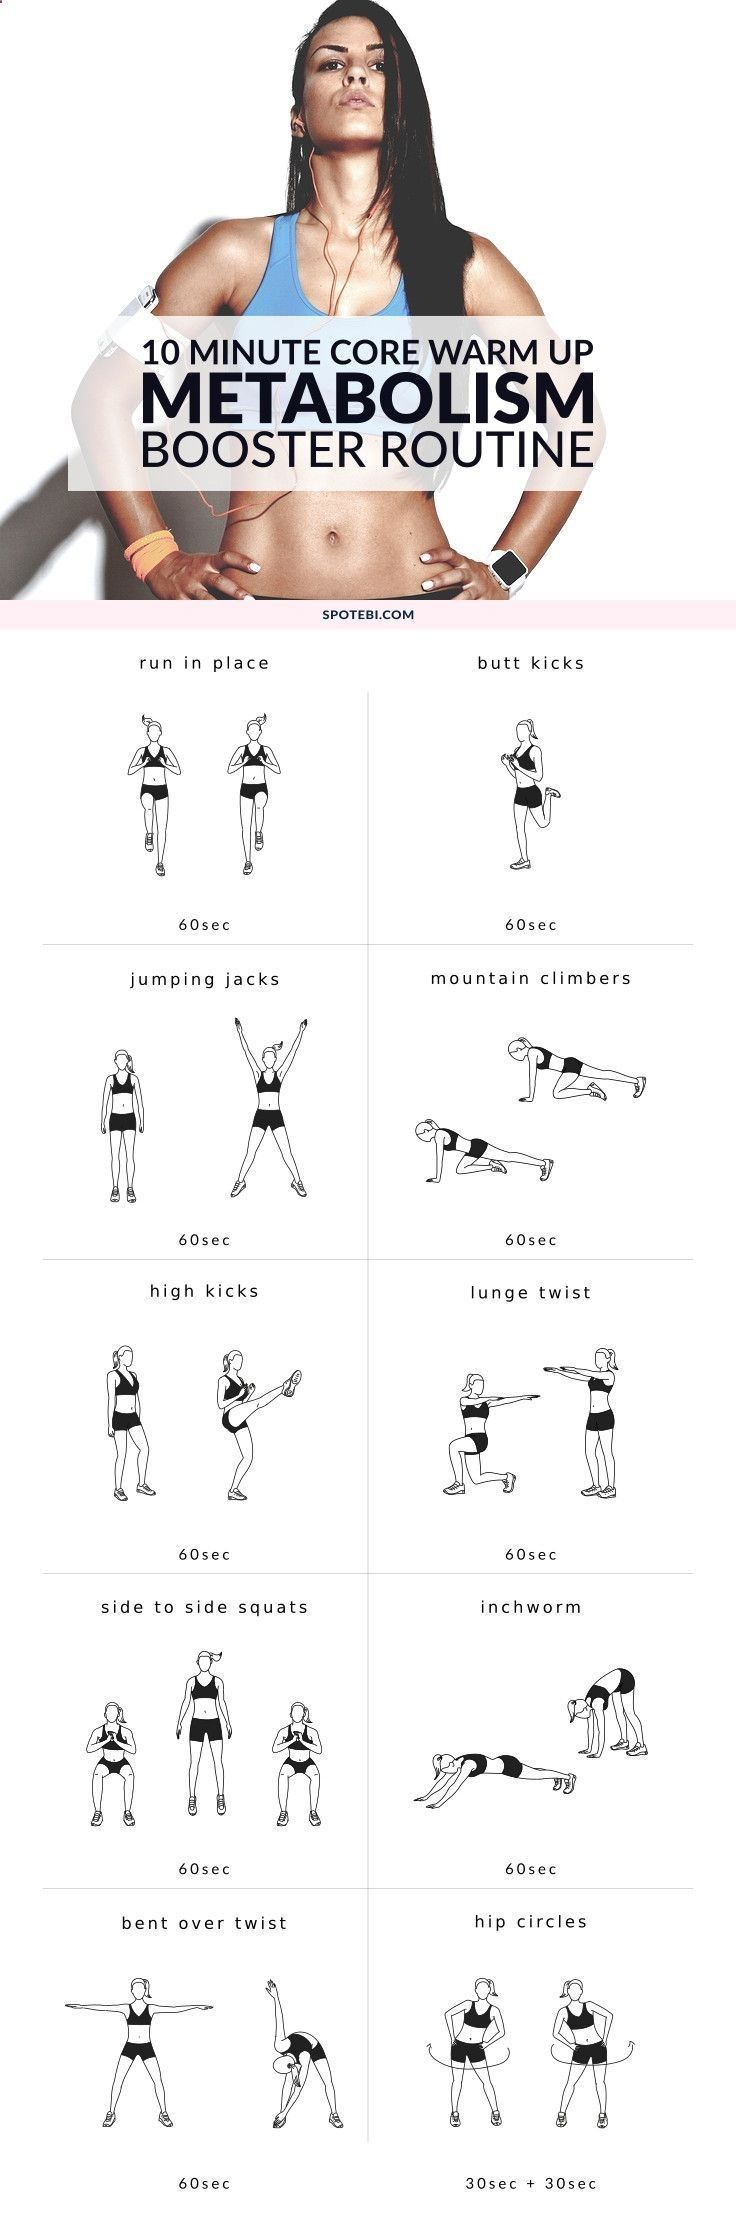 Best 25 healthy weight charts ideas on pinterest nutrition food best 25 healthy weight charts ideas on pinterest nutrition food chart healthy eating facts and high protein foods list nvjuhfo Images